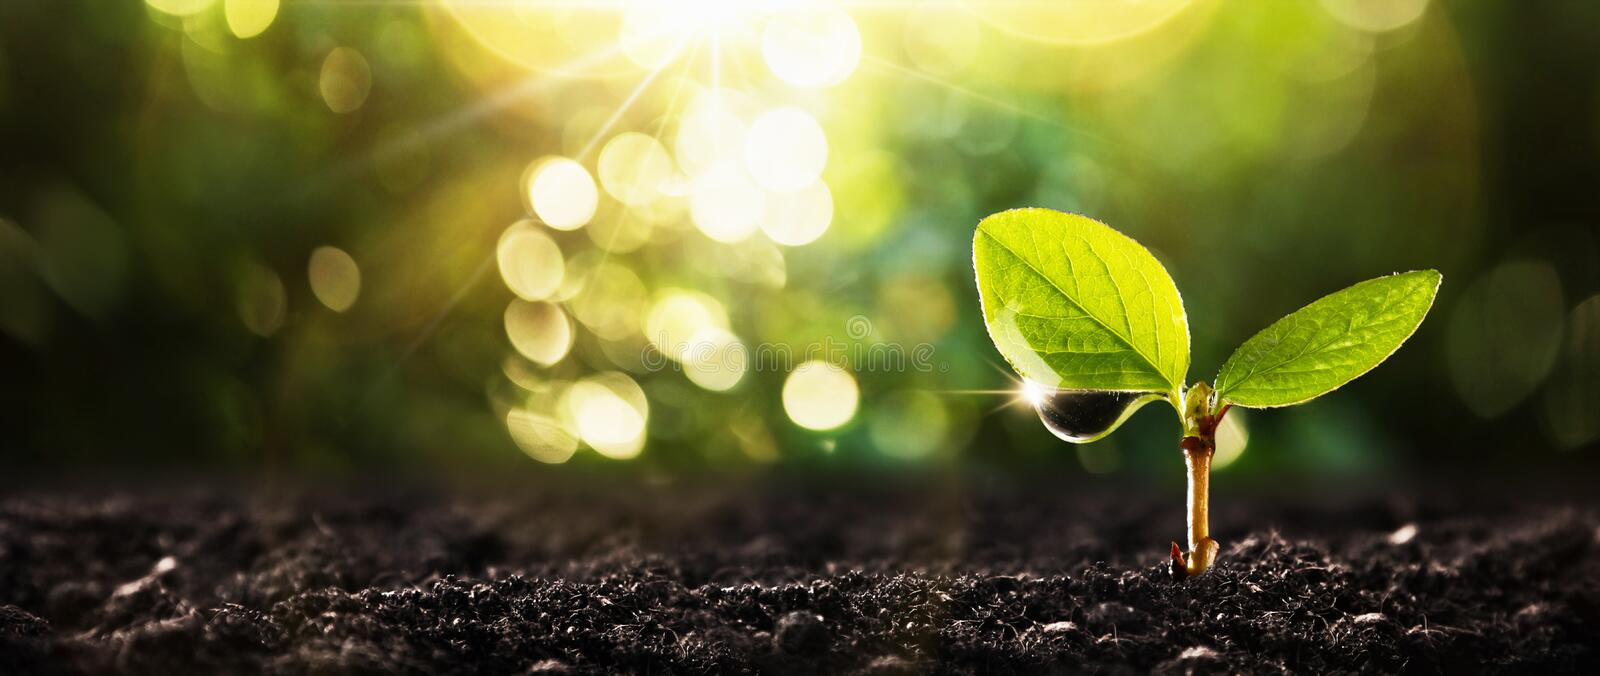 Young Plant in Sunlight royalty free stock photos